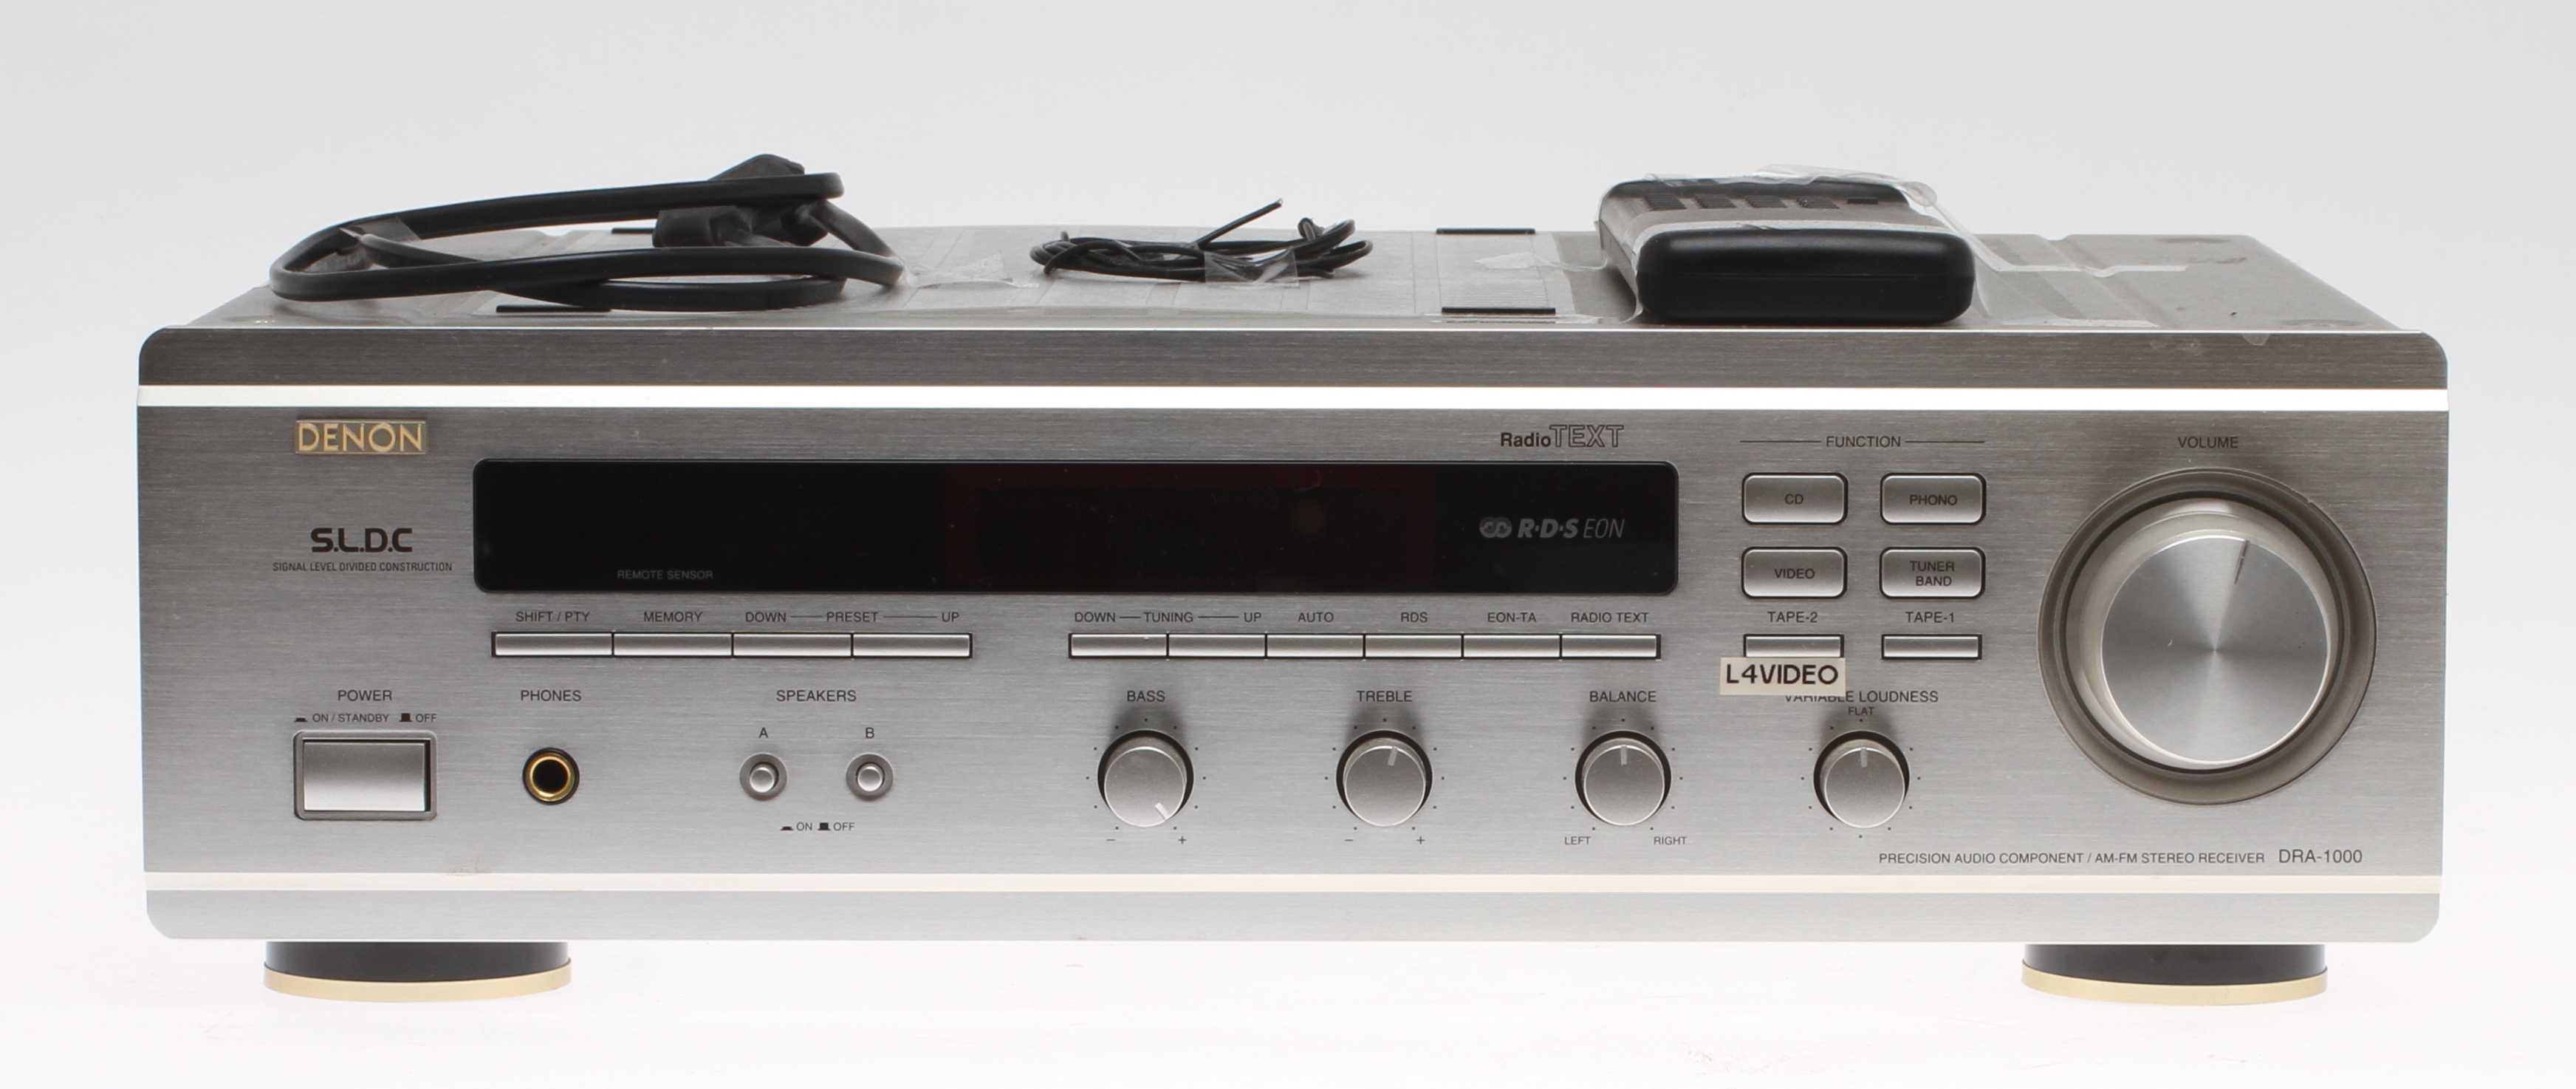 Bilder f r 36924 f rst rkare denon dra 1000 auctionet for What to dra